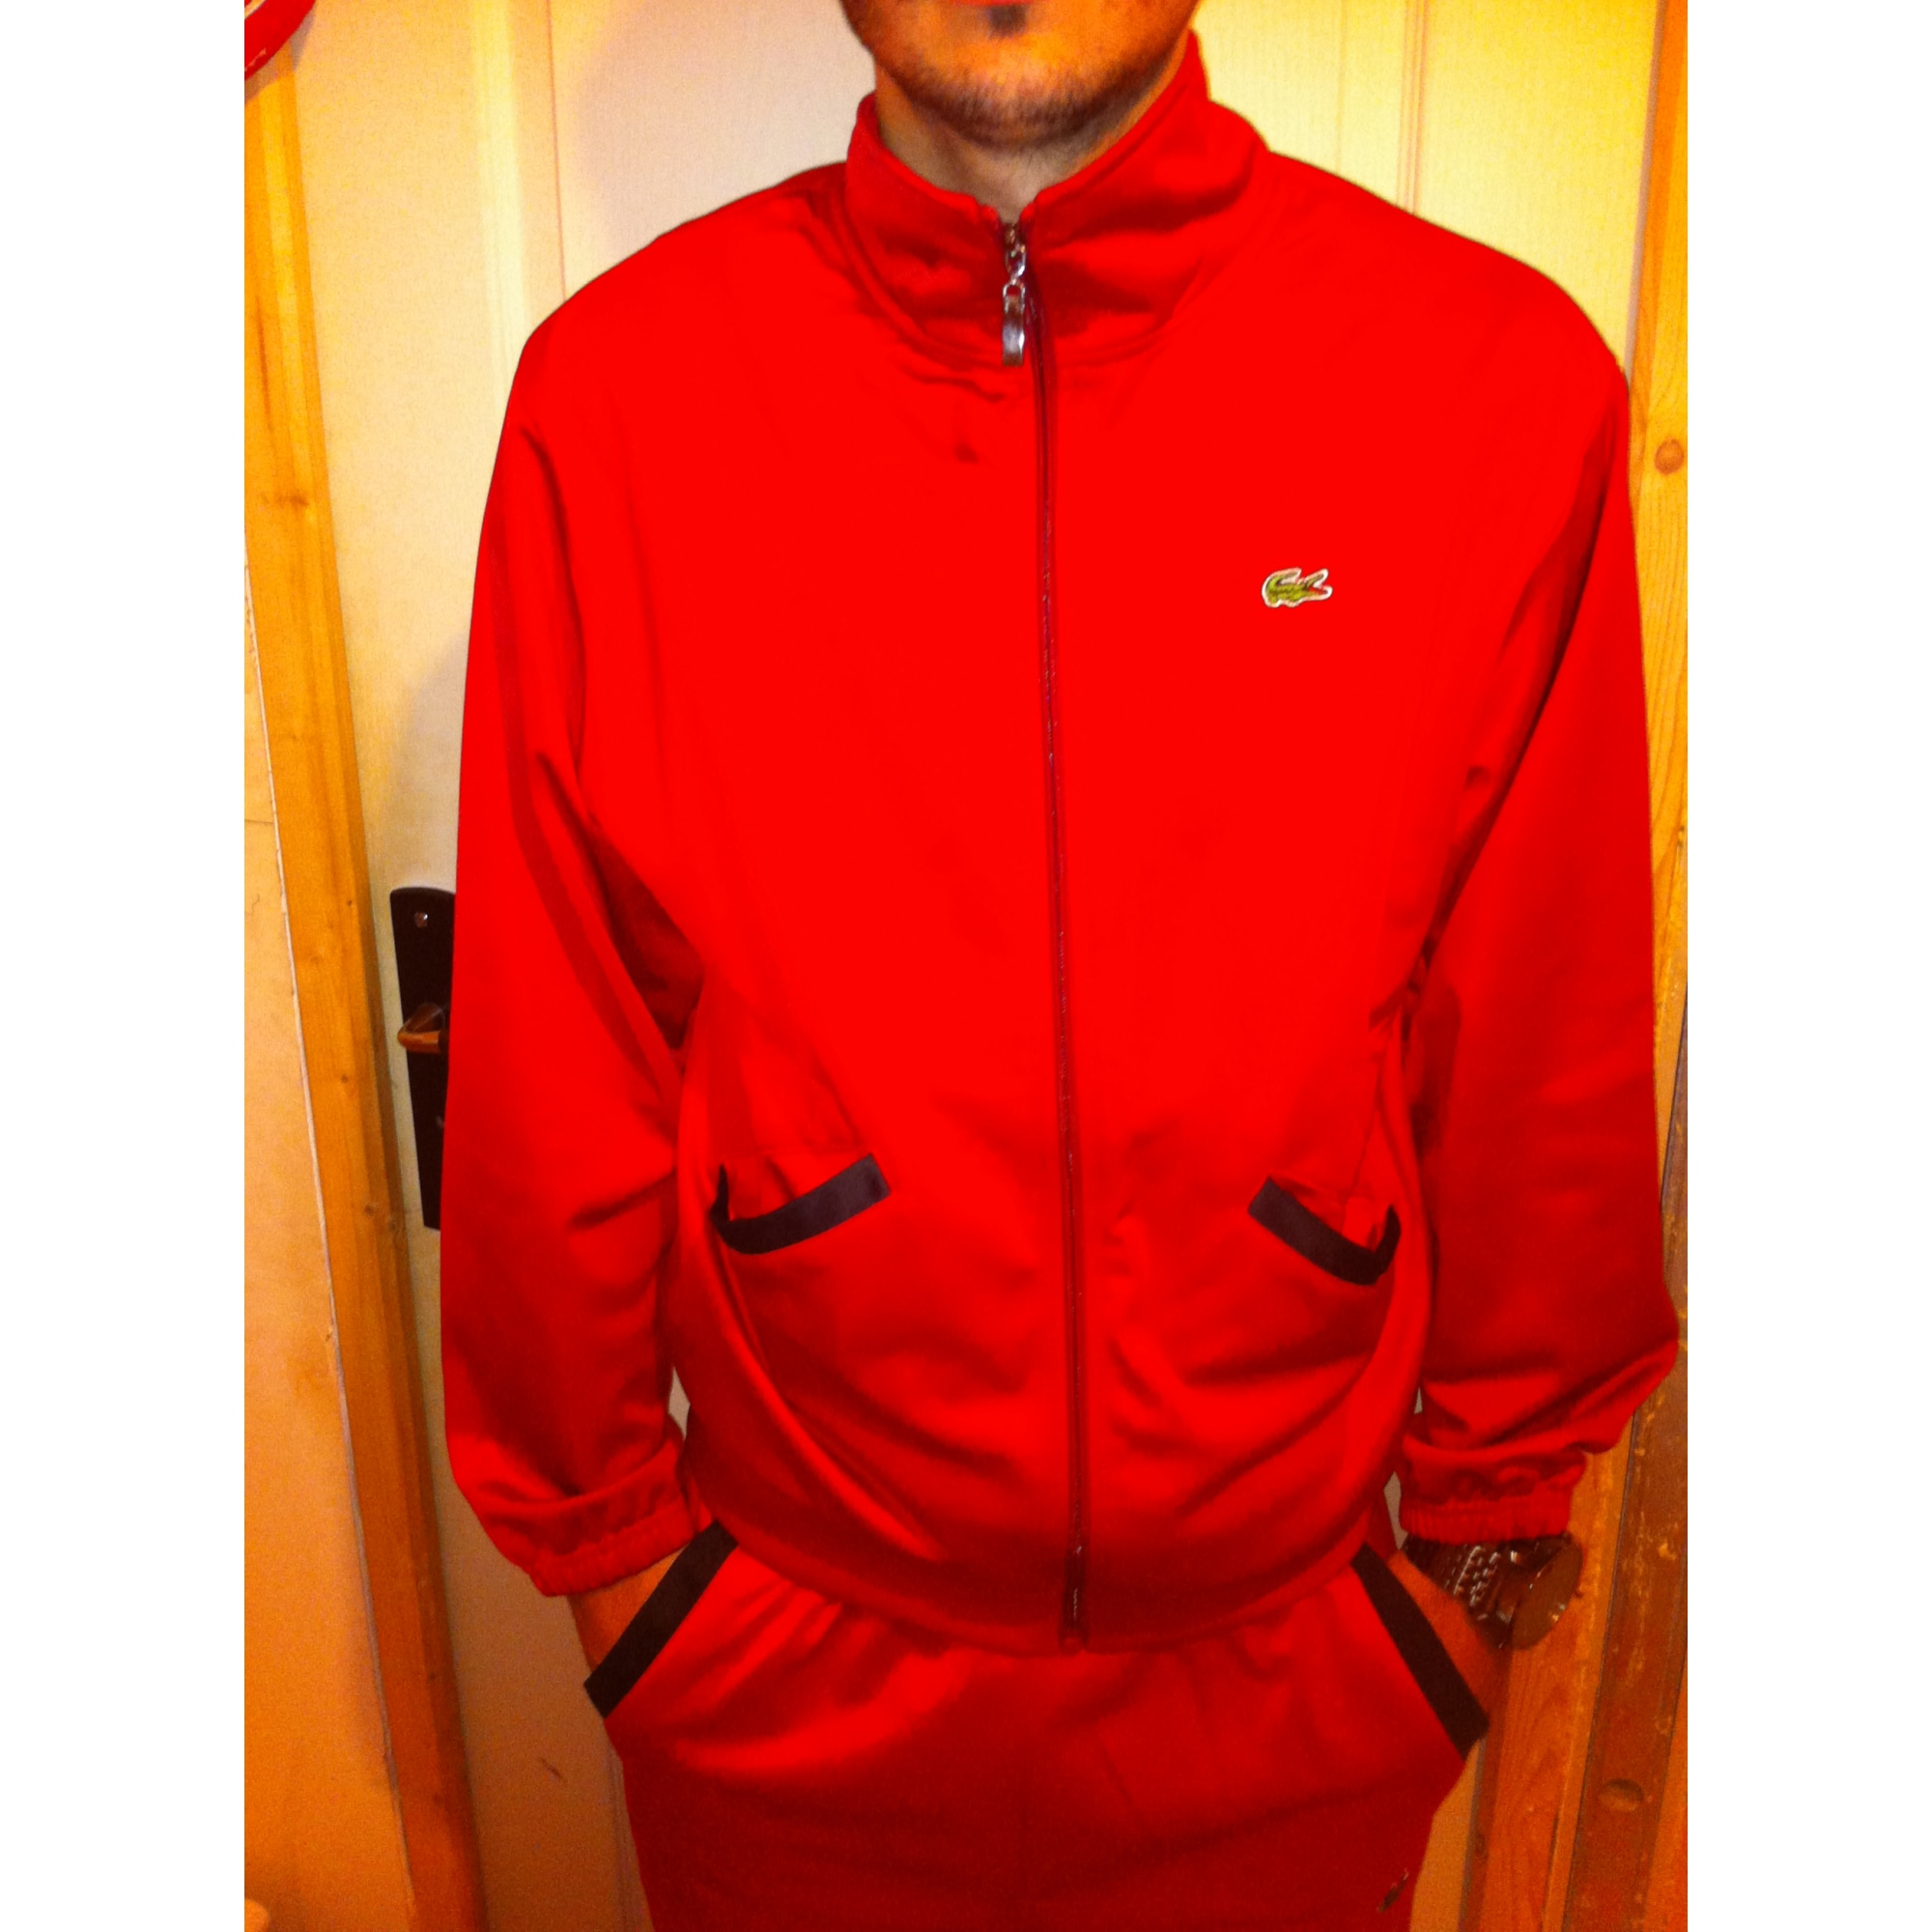 5fd0812f969 Ensemble jogging LACOSTE 52 (L) rouge - 2676115